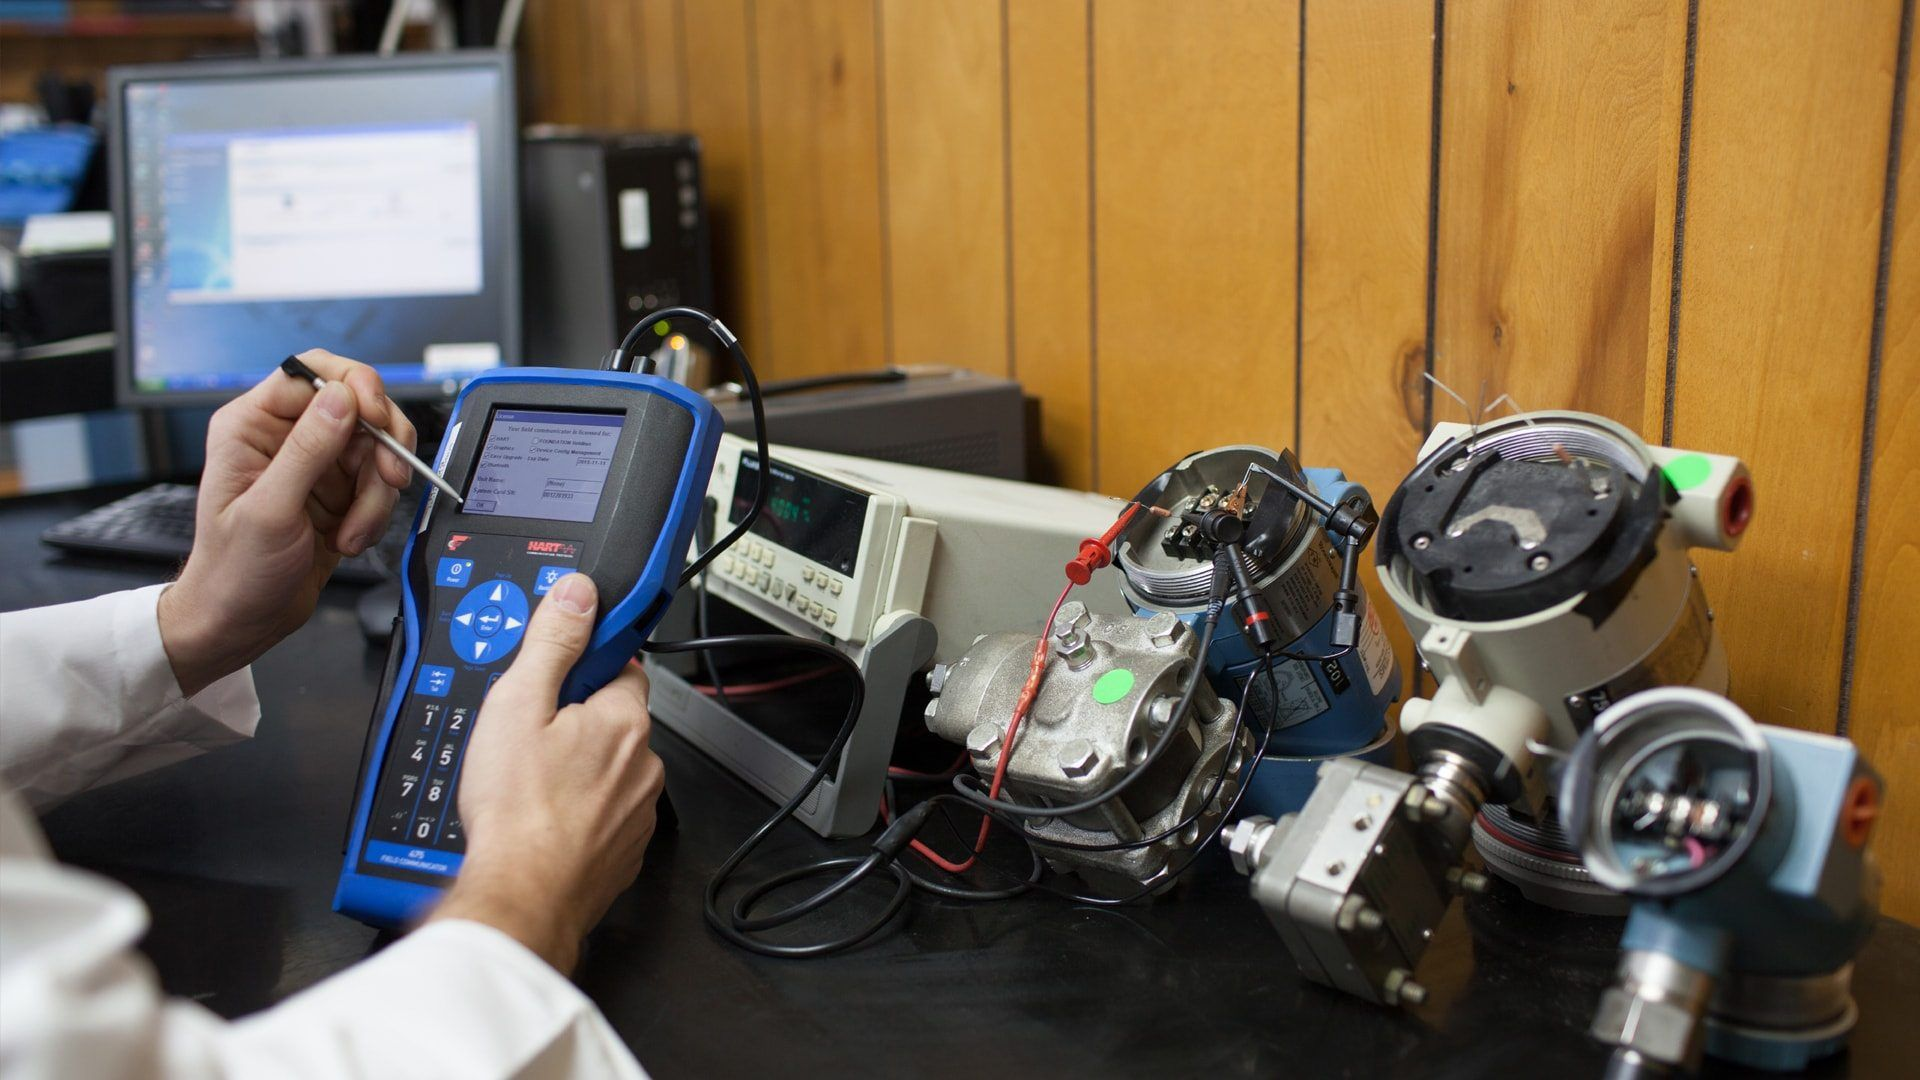 Test Equipment Instrument Calibration